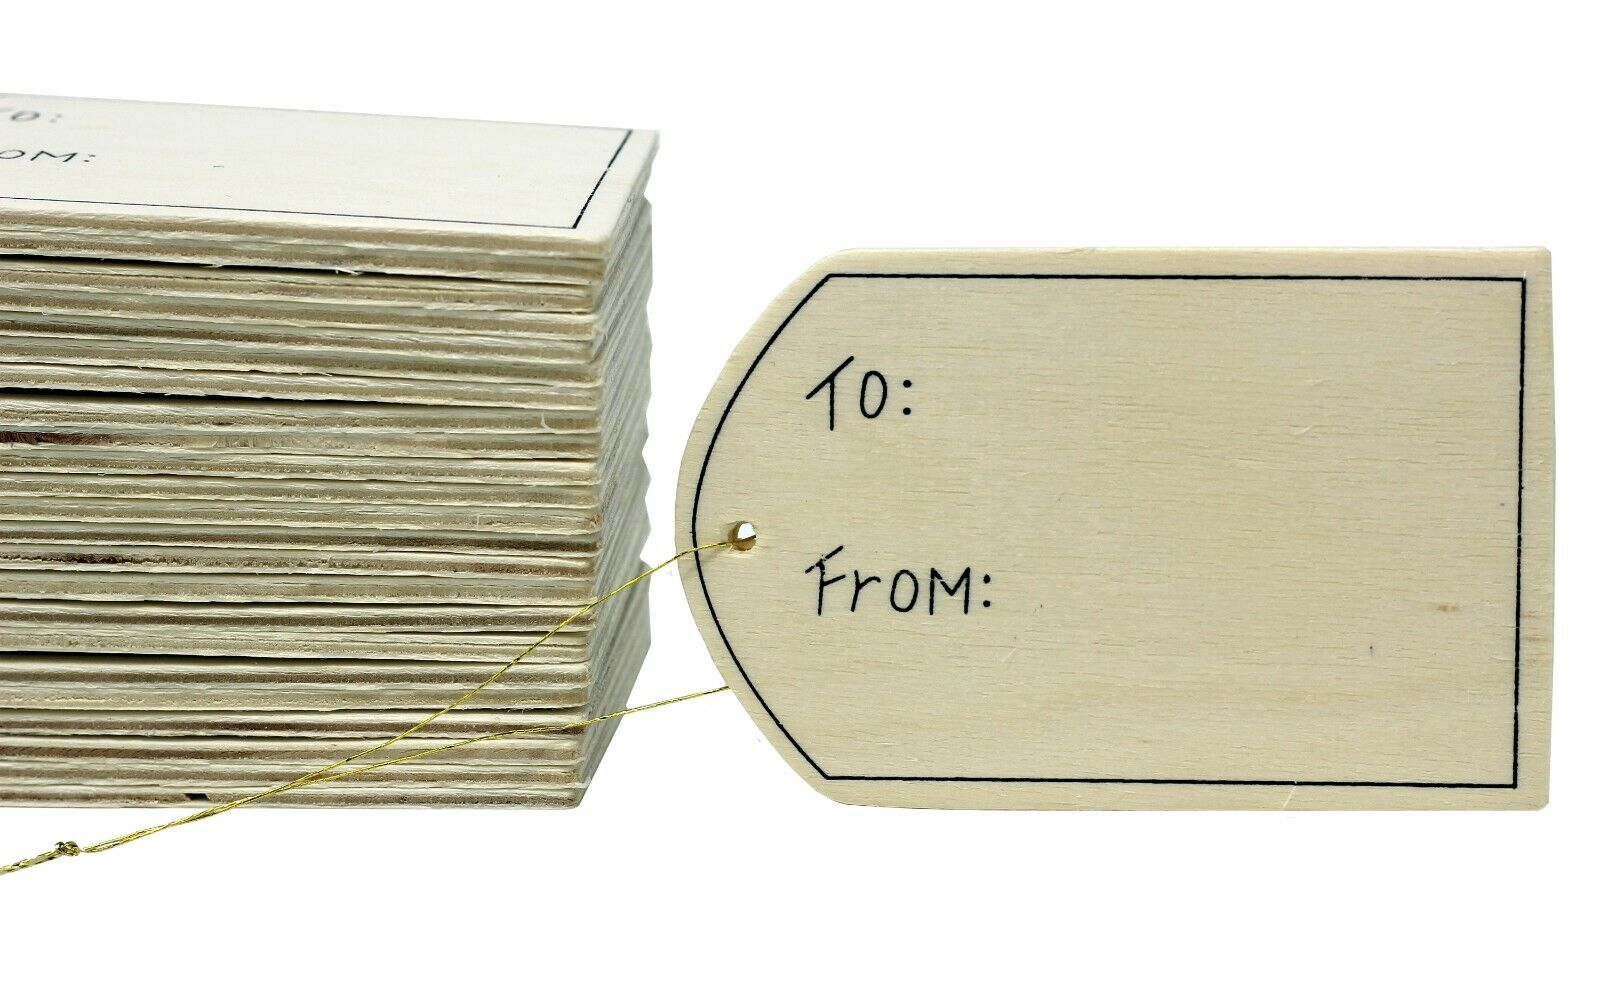 24 Pack – Unfinished Wood Gift Tag Ornaments with Gold Hanger Cords, 3.5 Inch Crafting Pieces